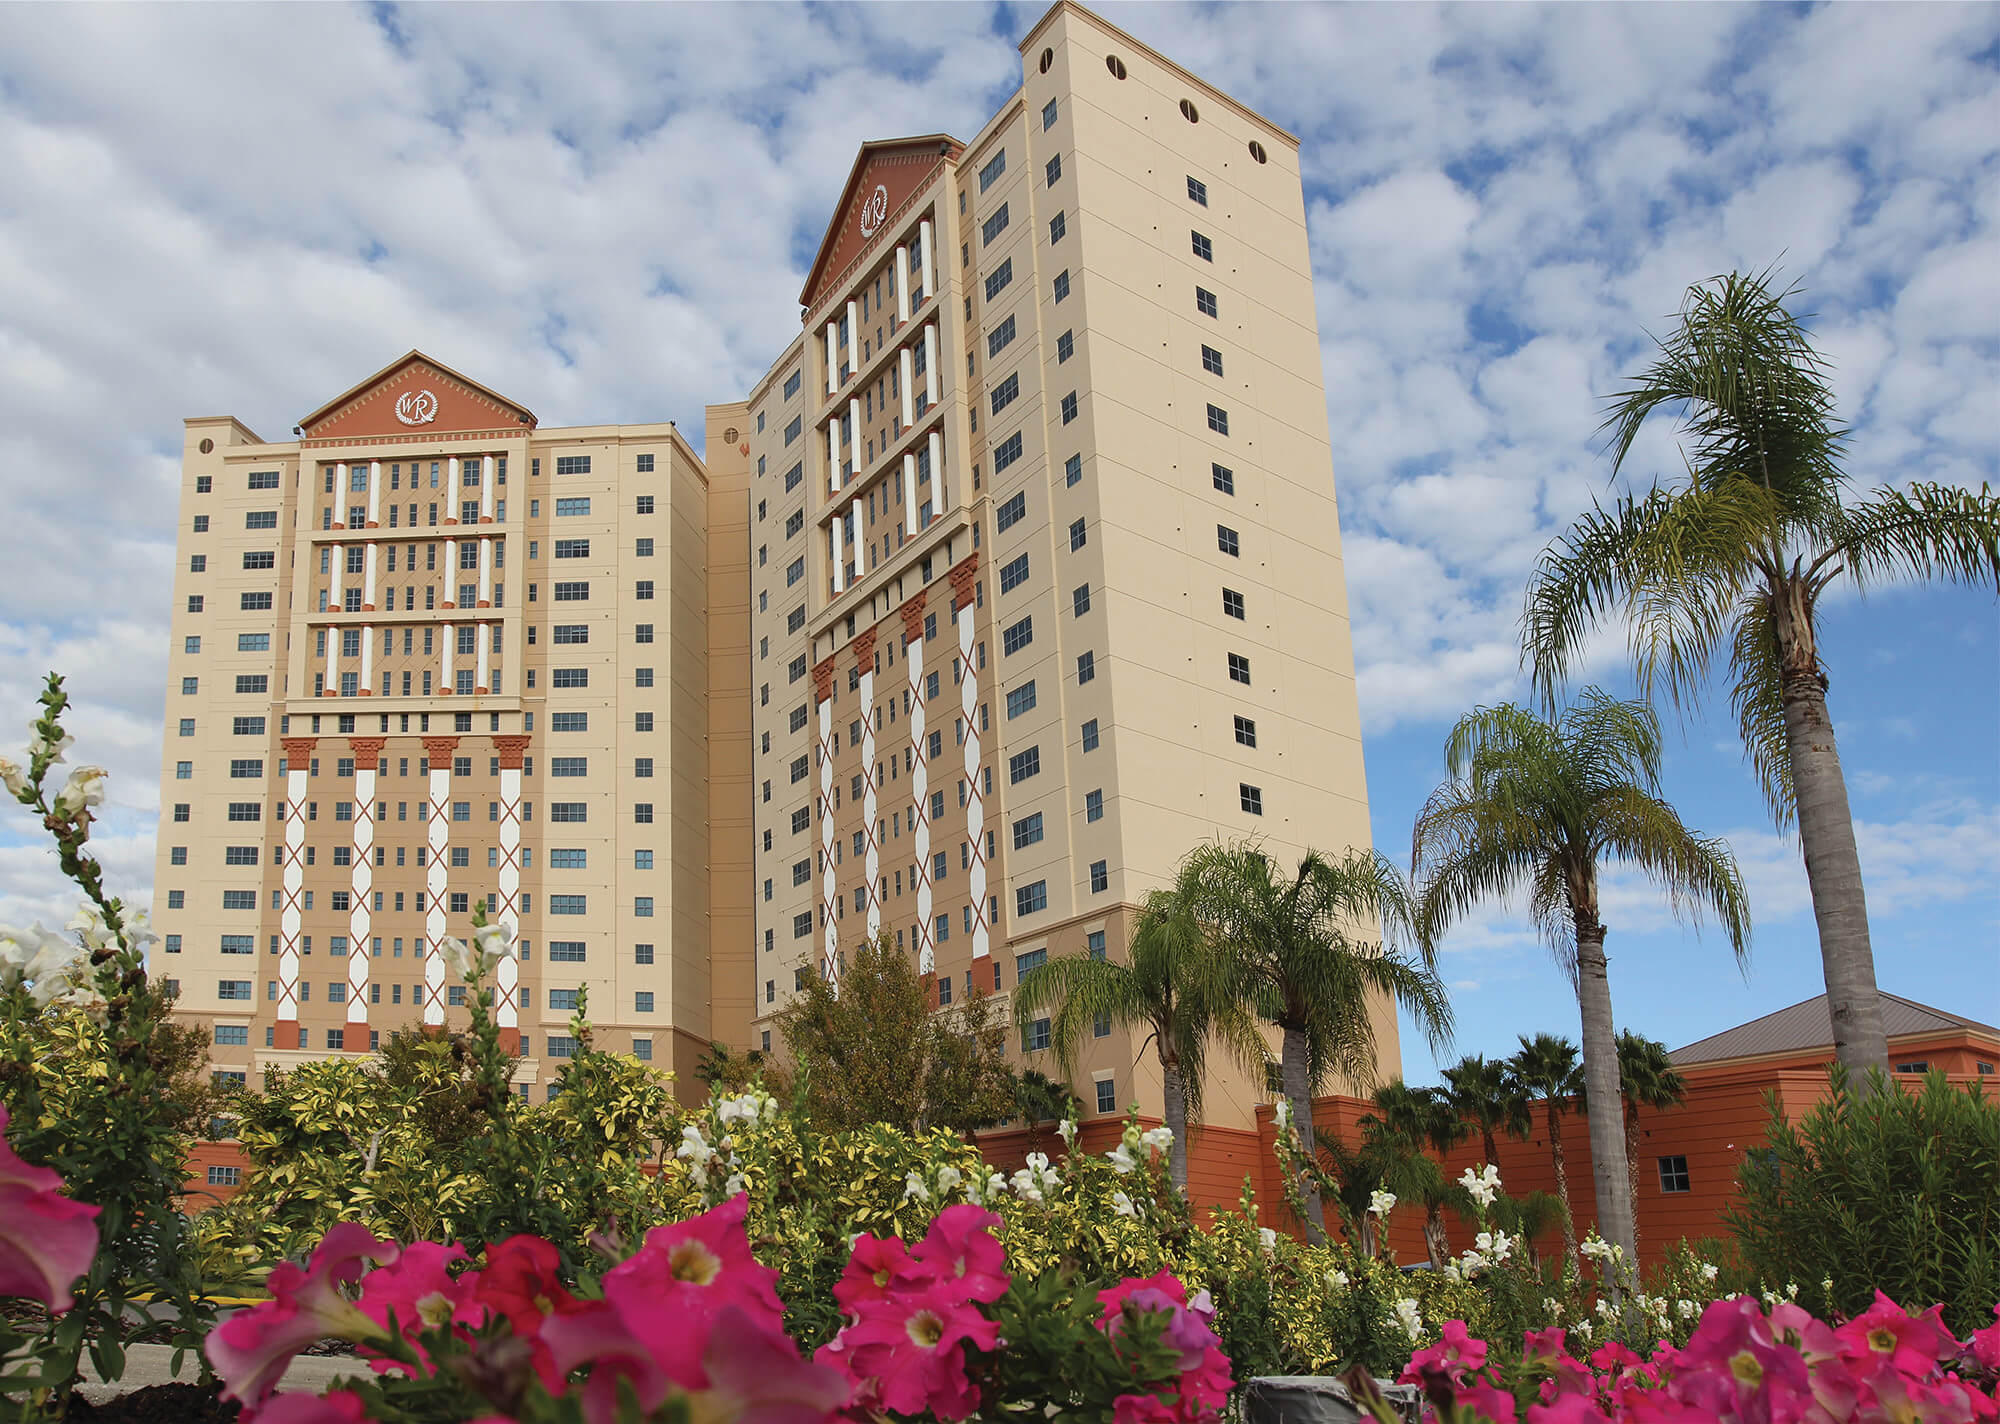 Our resorts on International Drive in Orlando Florida | Westgate Palace Resort | Westgate Resorts